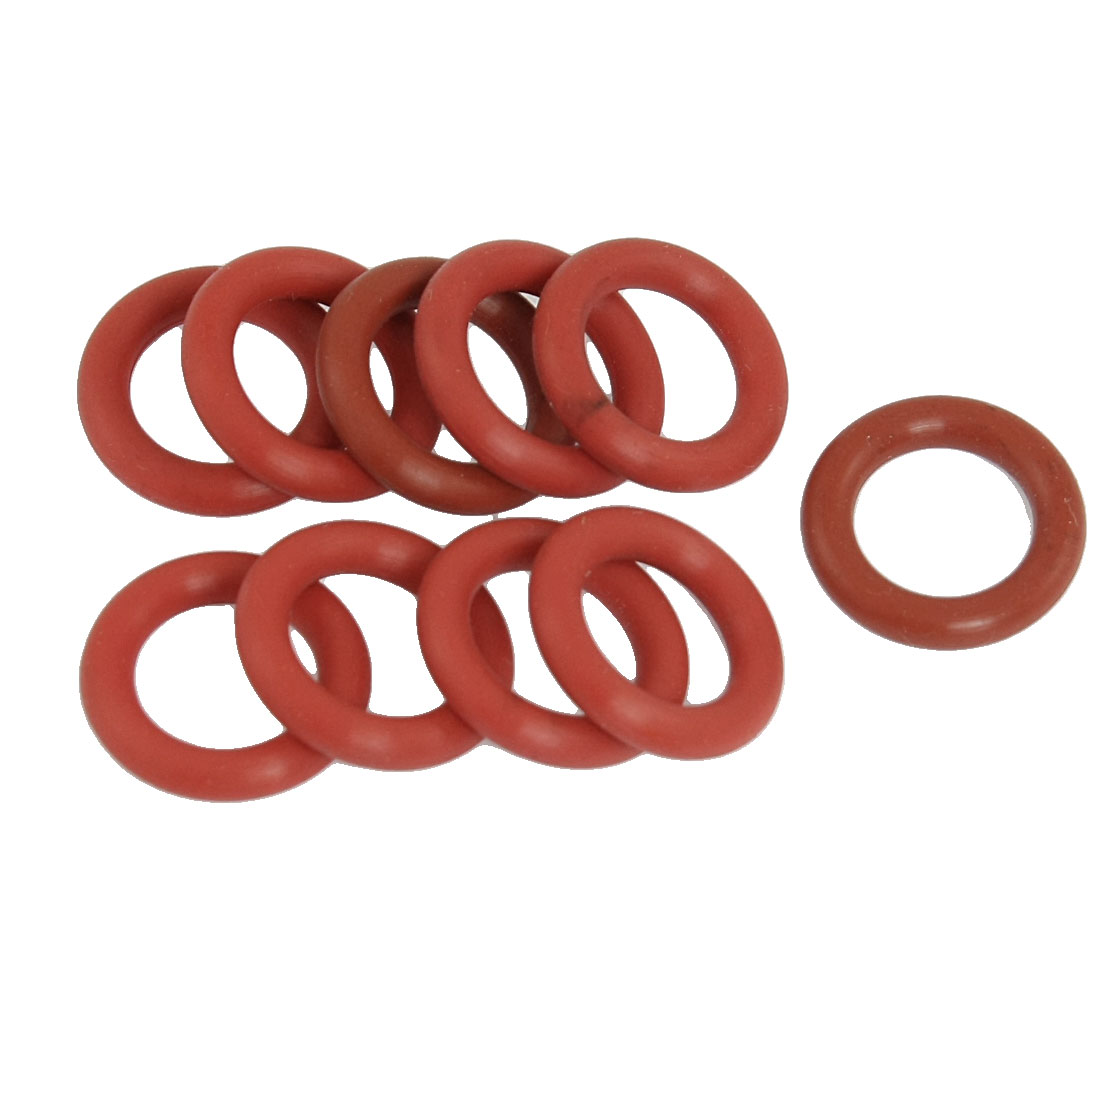 10-Pcs-19mm-Outside-Dia-3-5mm-Thick-Flexible-Silicone-O-Ring-Seal-Brick-Red